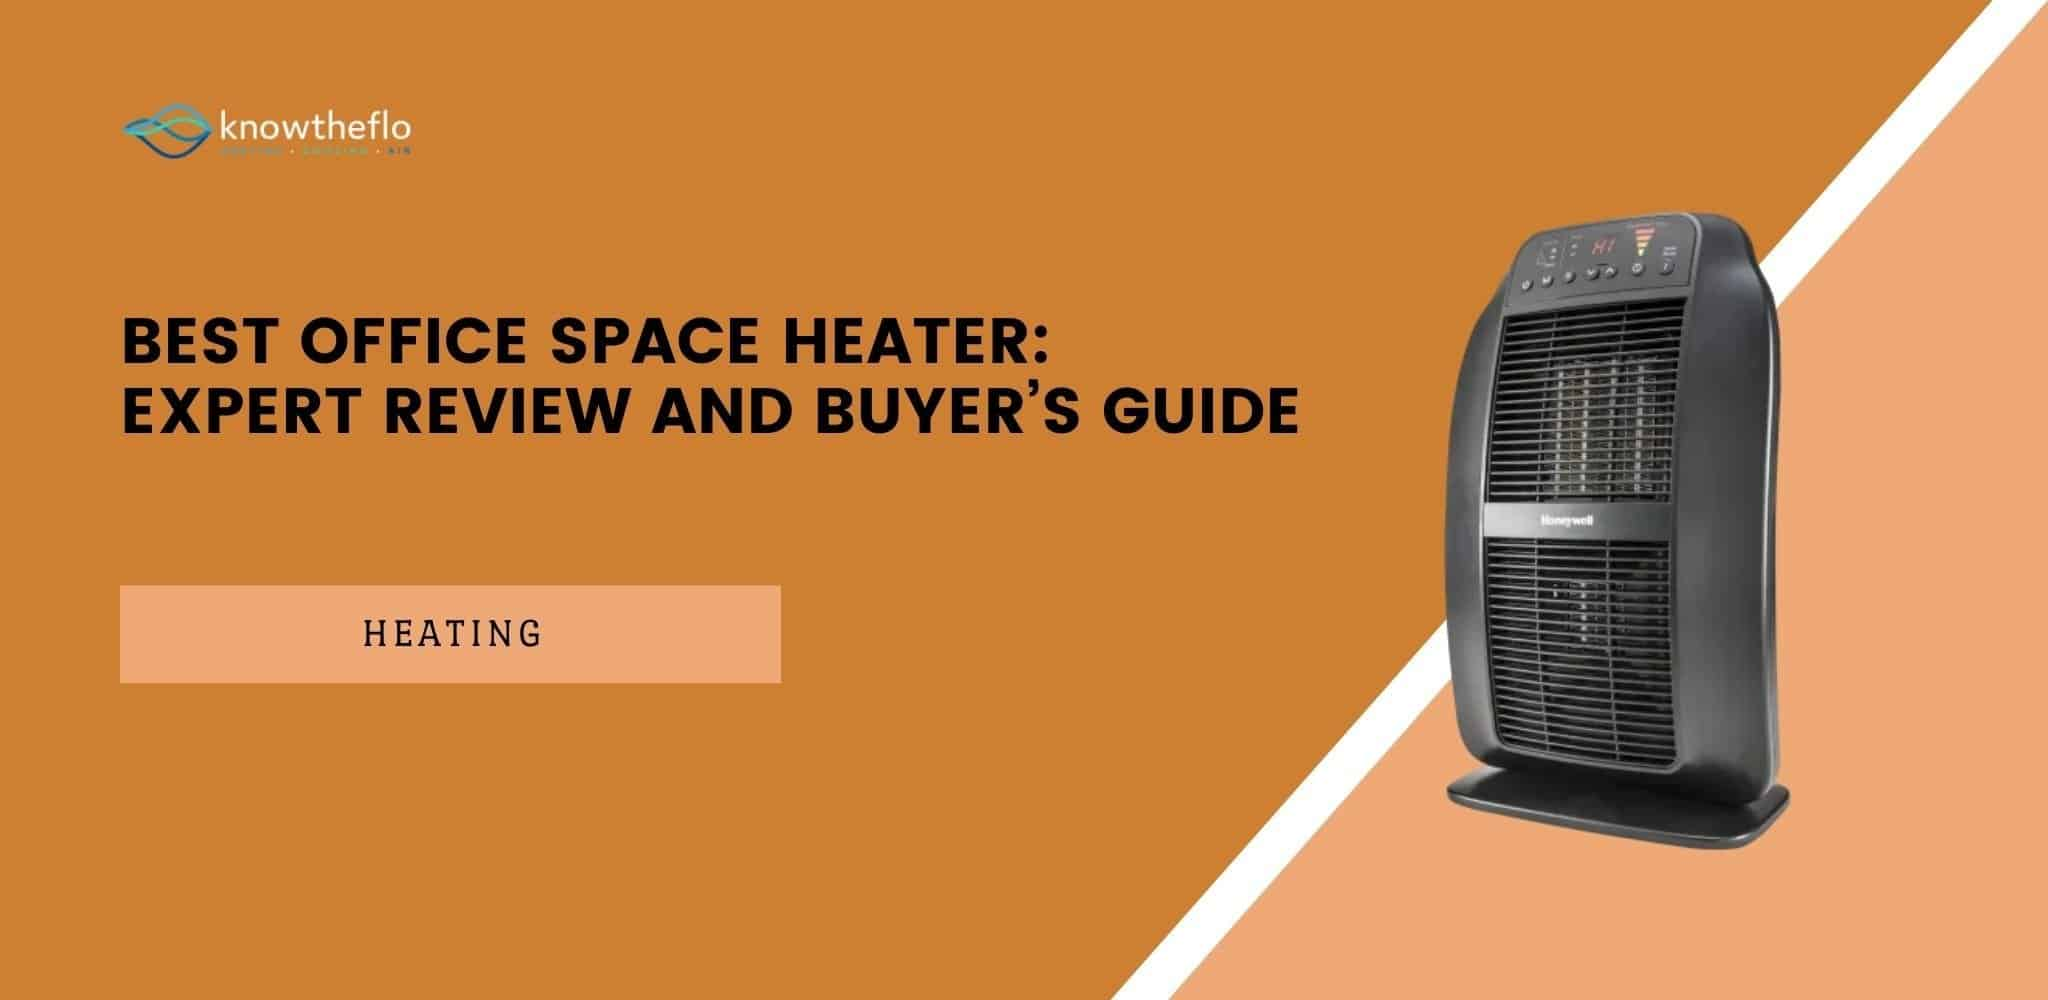 Best Office Space Heater - Expert Review and Buyer's Guide